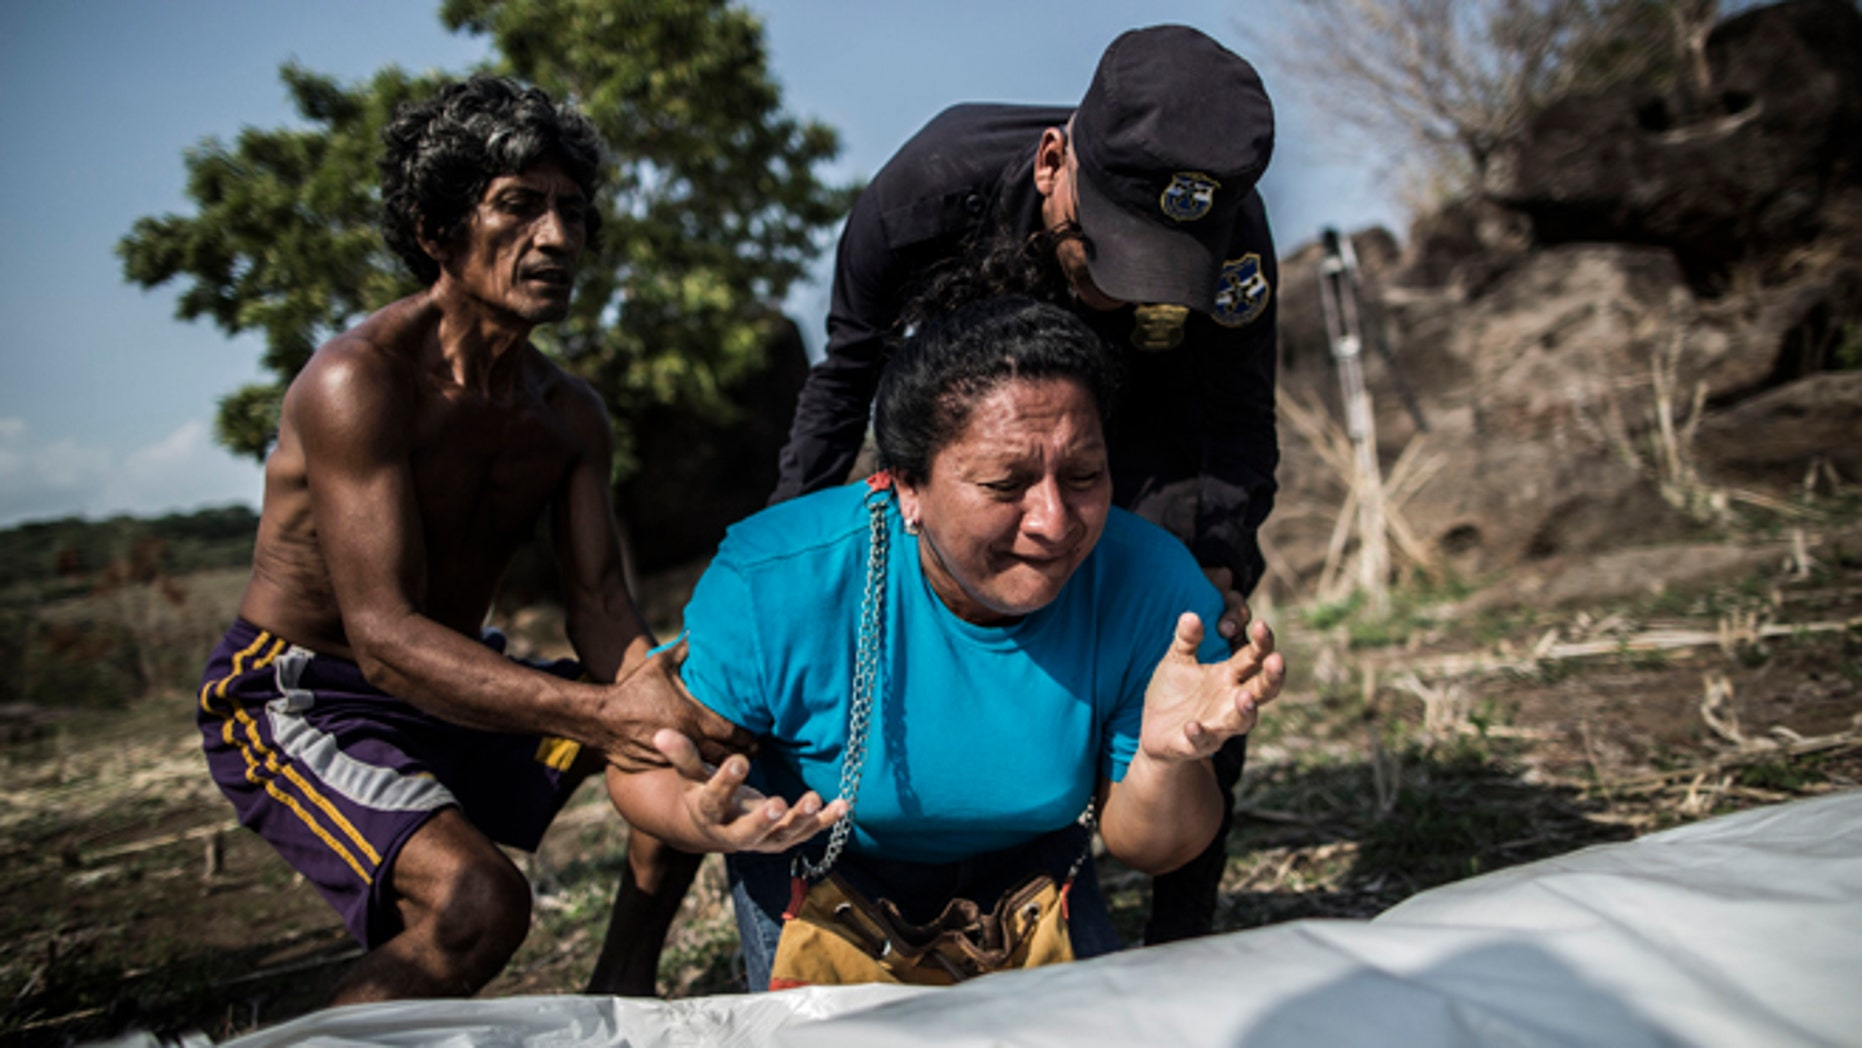 FILE - In this May 28, 2015, file photo, the sister of Alberto Hernández Escalante mourns over the body of her brother, found in a clandestine grave, in a rural area near Caserio el Chumpe, El Salvador. (AP Photo/Manu Brabo, File)